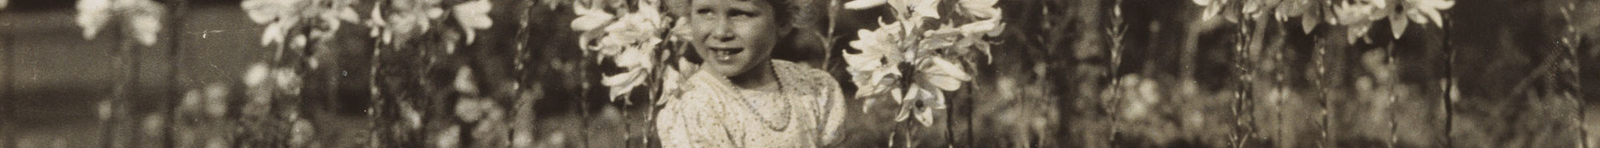 In 1929 Princess Elizabeth was photographed by her father, the future King George VI, standing in front of a group of Madonna lilies, lilium candidum. The photograph was taken at St Paul's Walden Bury, the Hertfordshire home of the Princess's maternal g